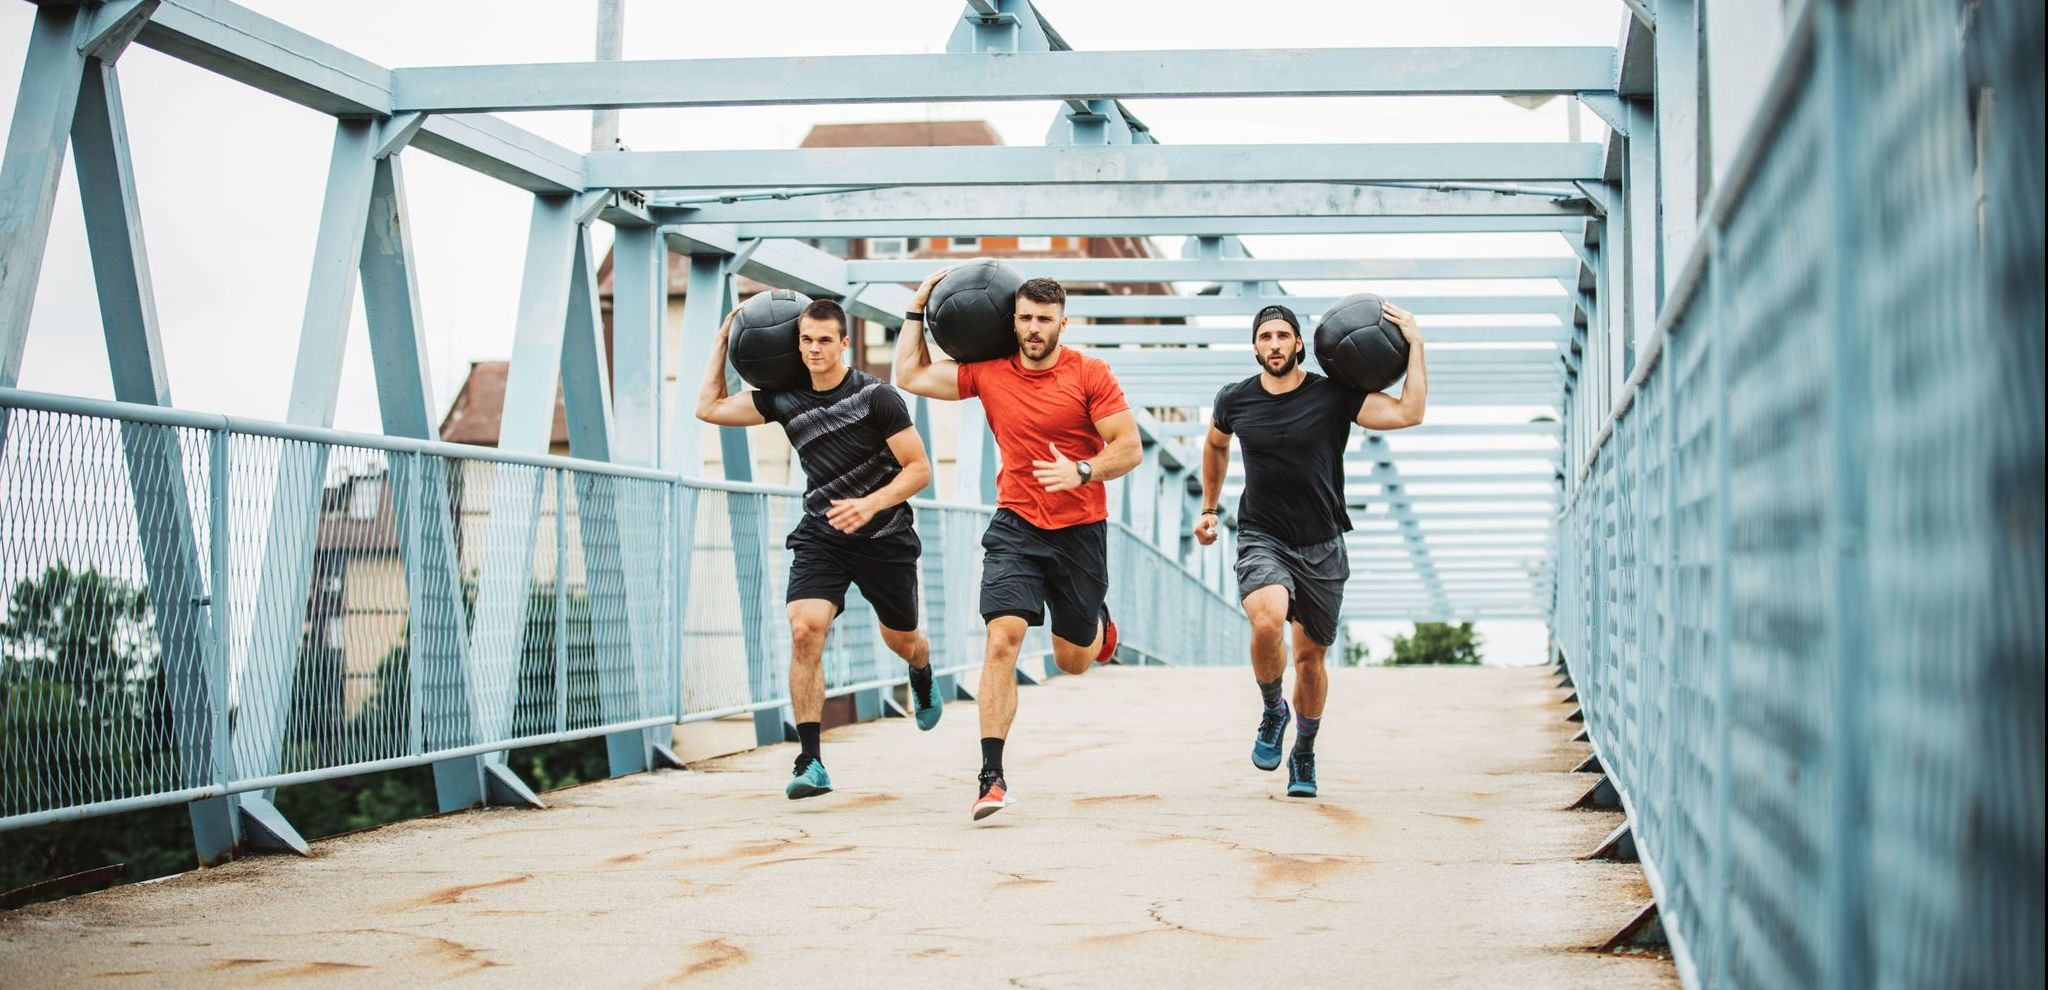 These Are the 20 Fittest Cities in America